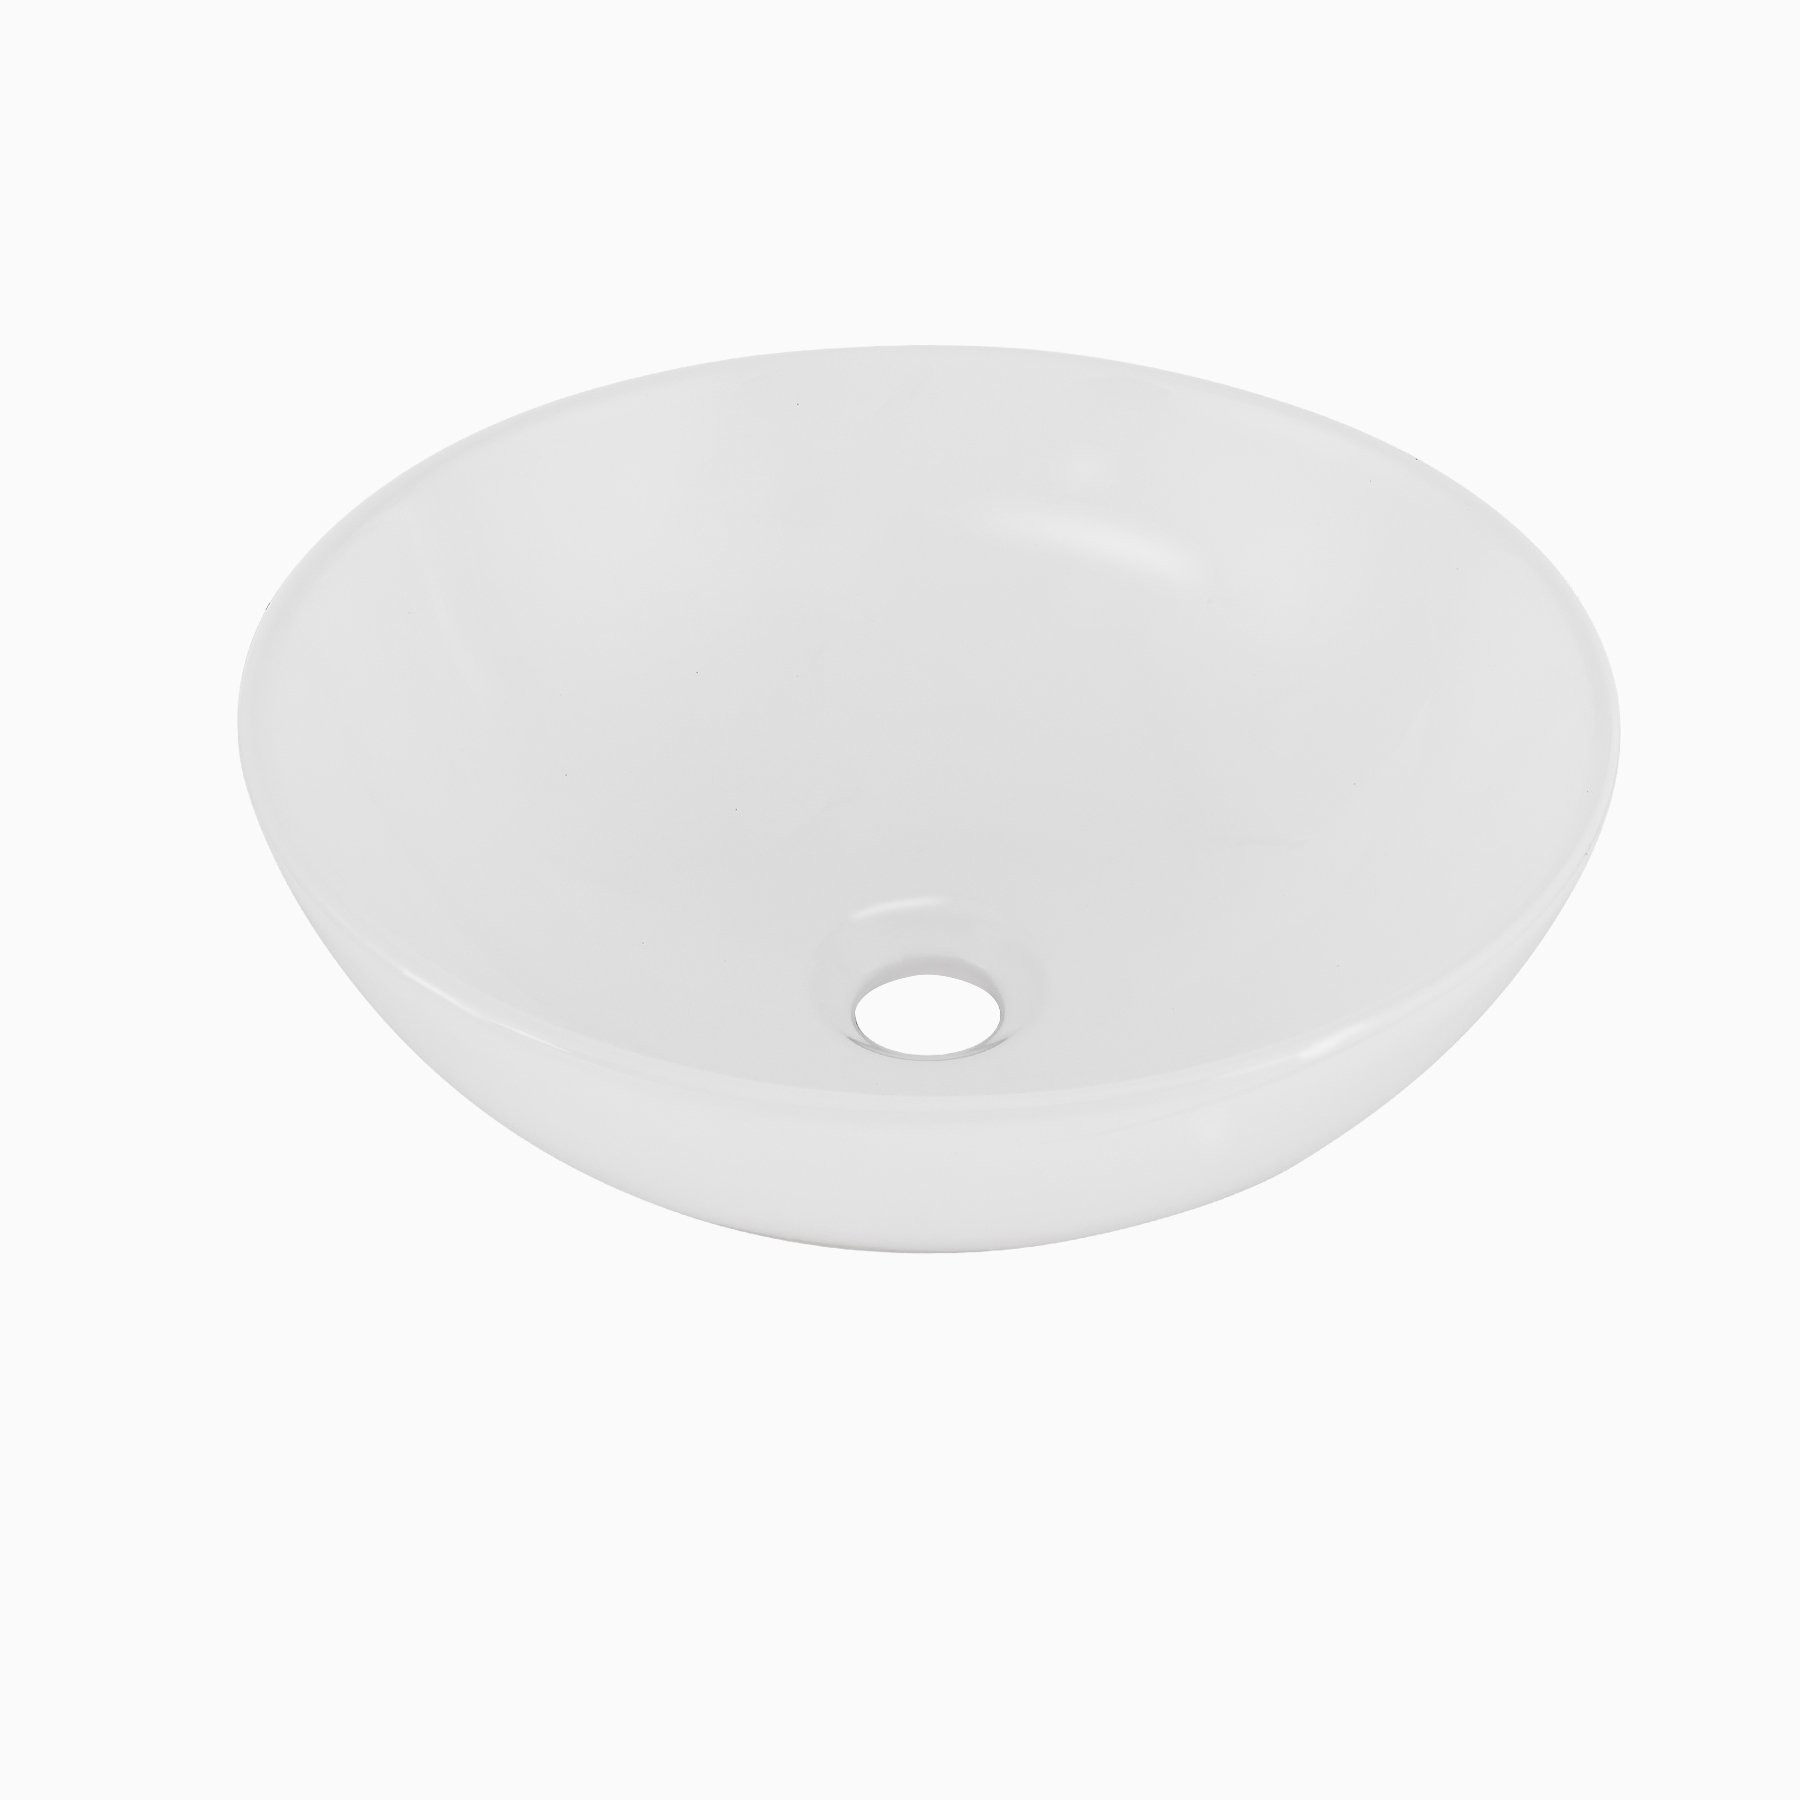 Capel Ceramic Vessel Sink